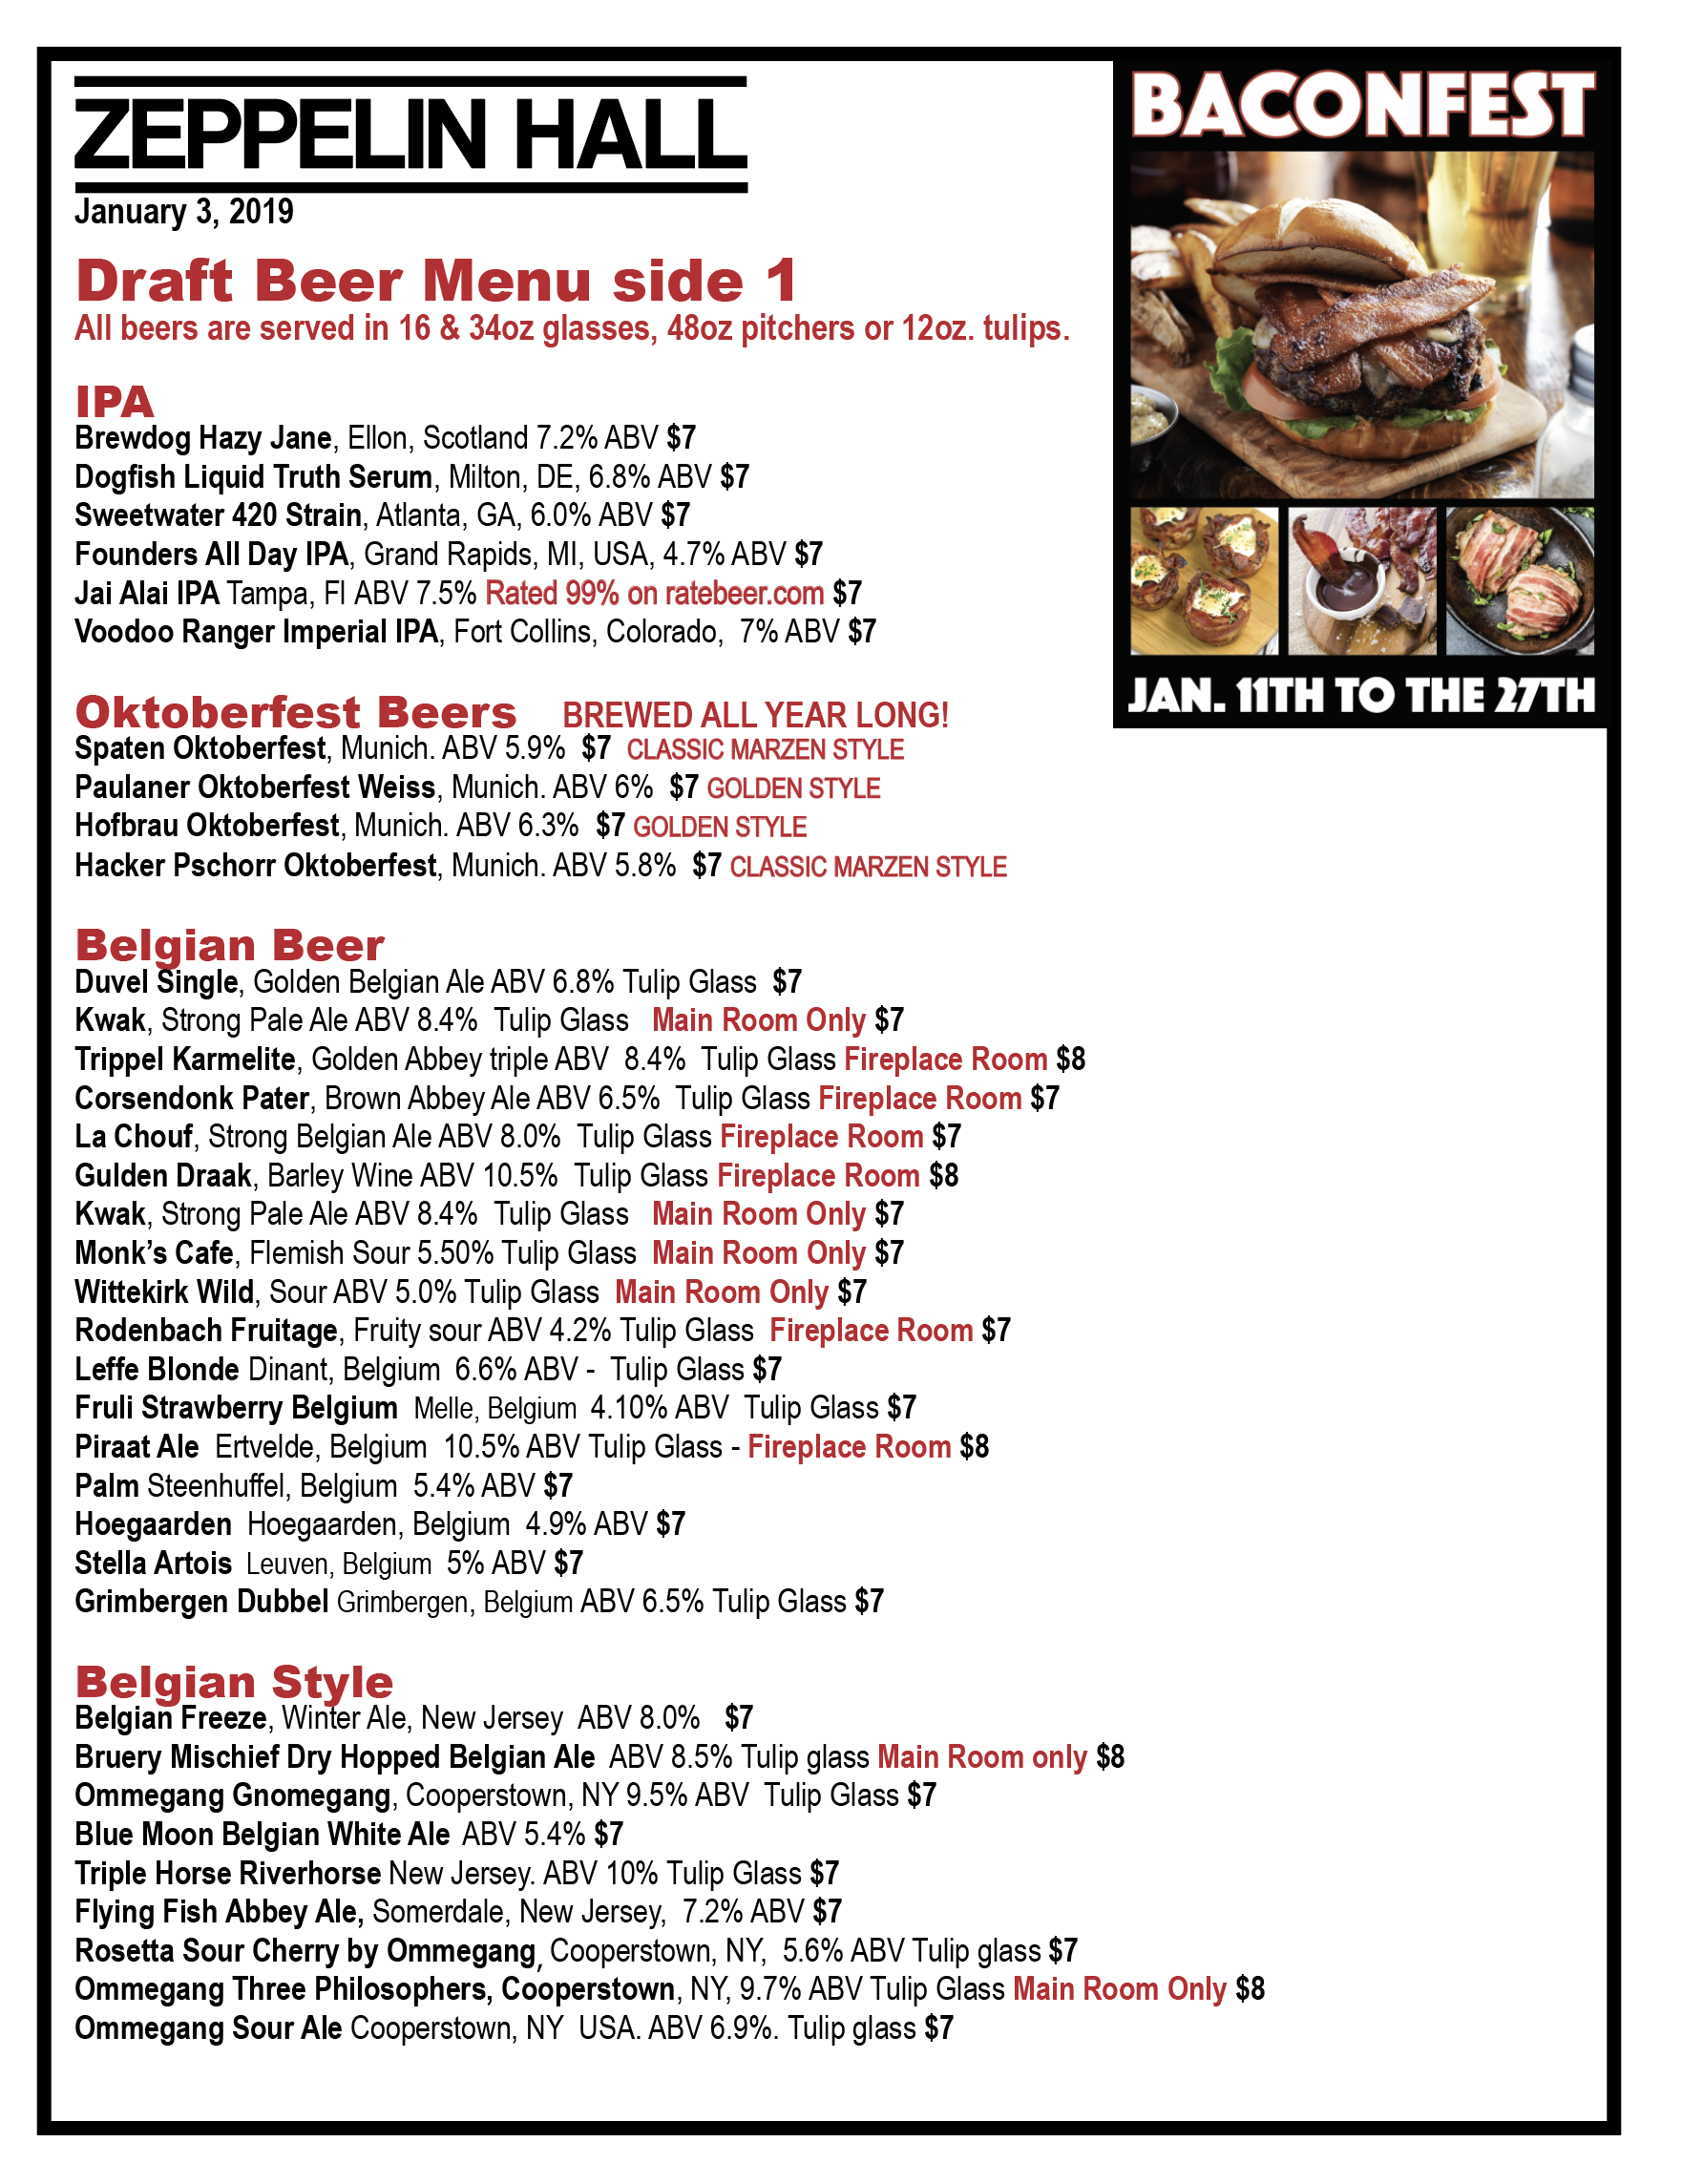 Zeppelin Hall Draft Beer Menu